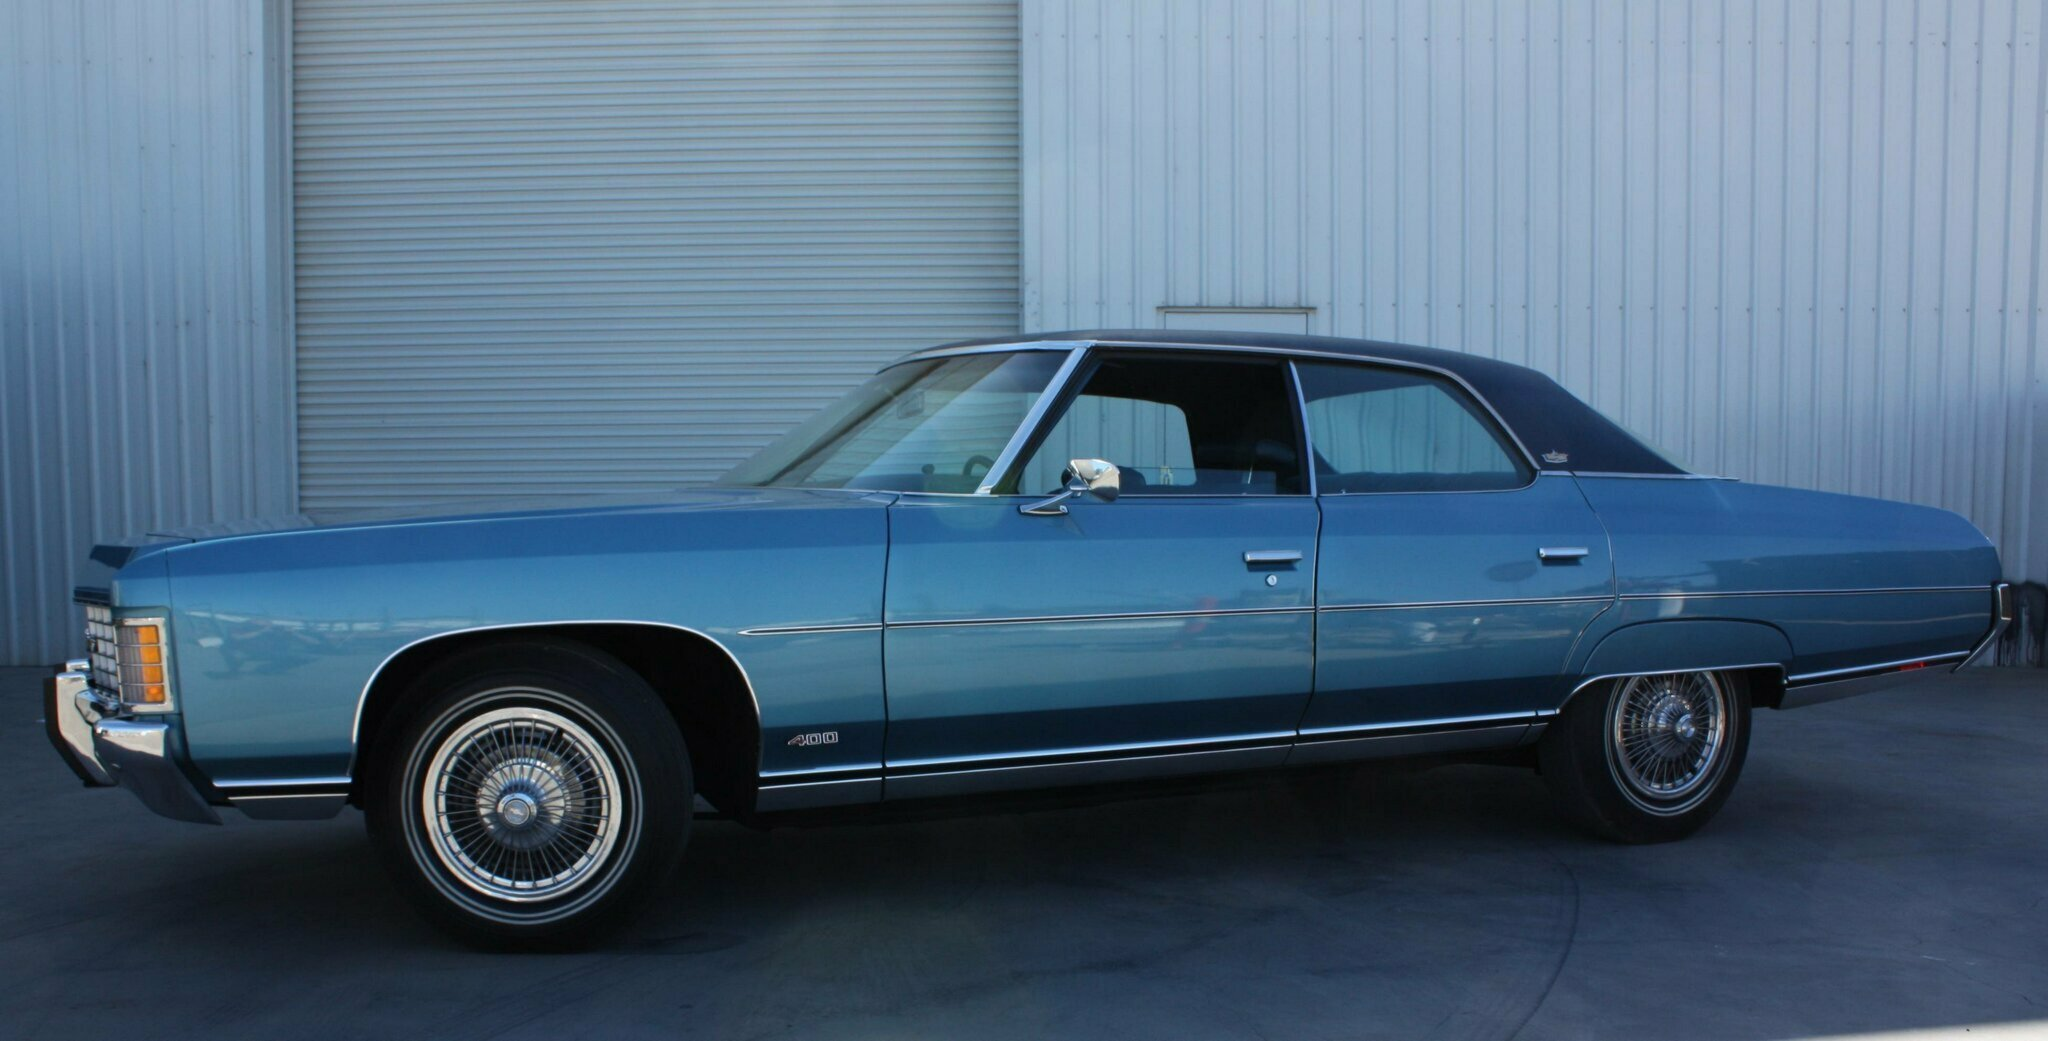 Chevrolet Caprice Cars for sale in Australia - JUST CARS